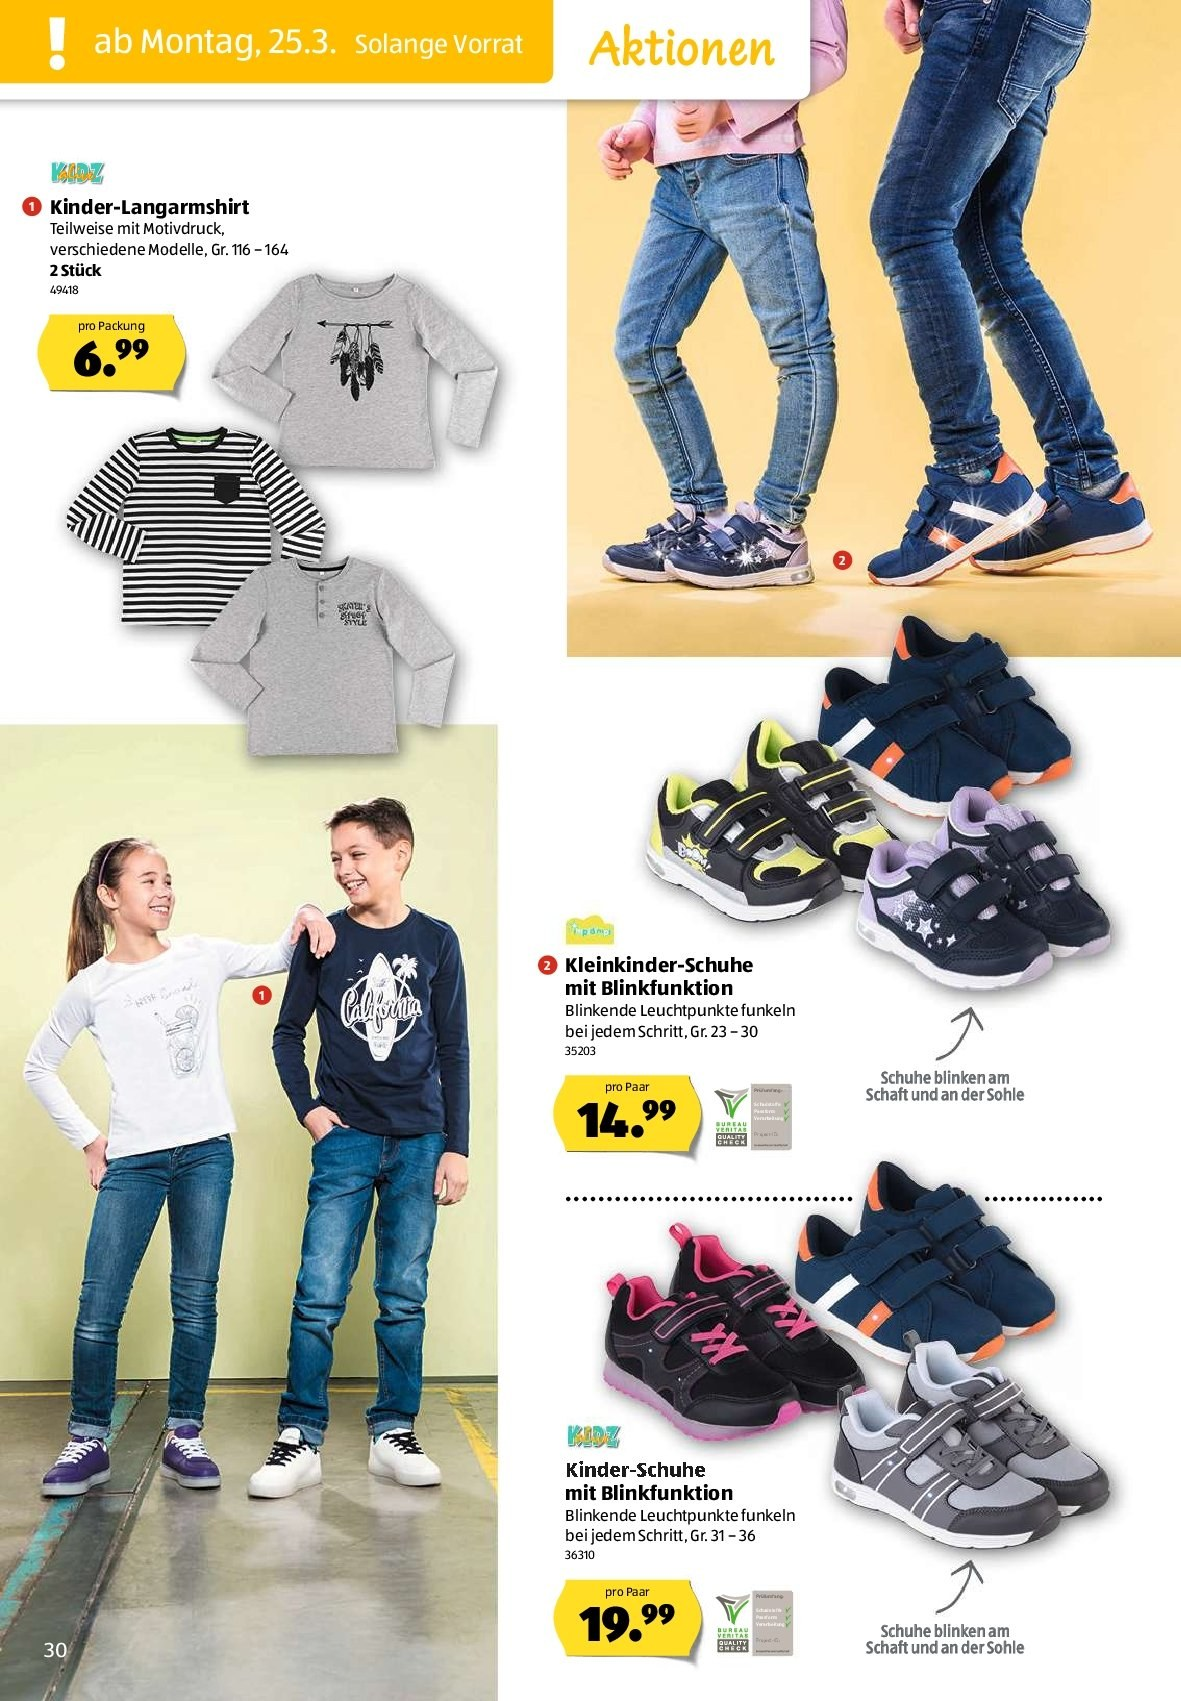 best loved d2225 edb18 Aldi Prospekt 21.3.2019 - 27.3.2019 | Rabatt-kompass.ch